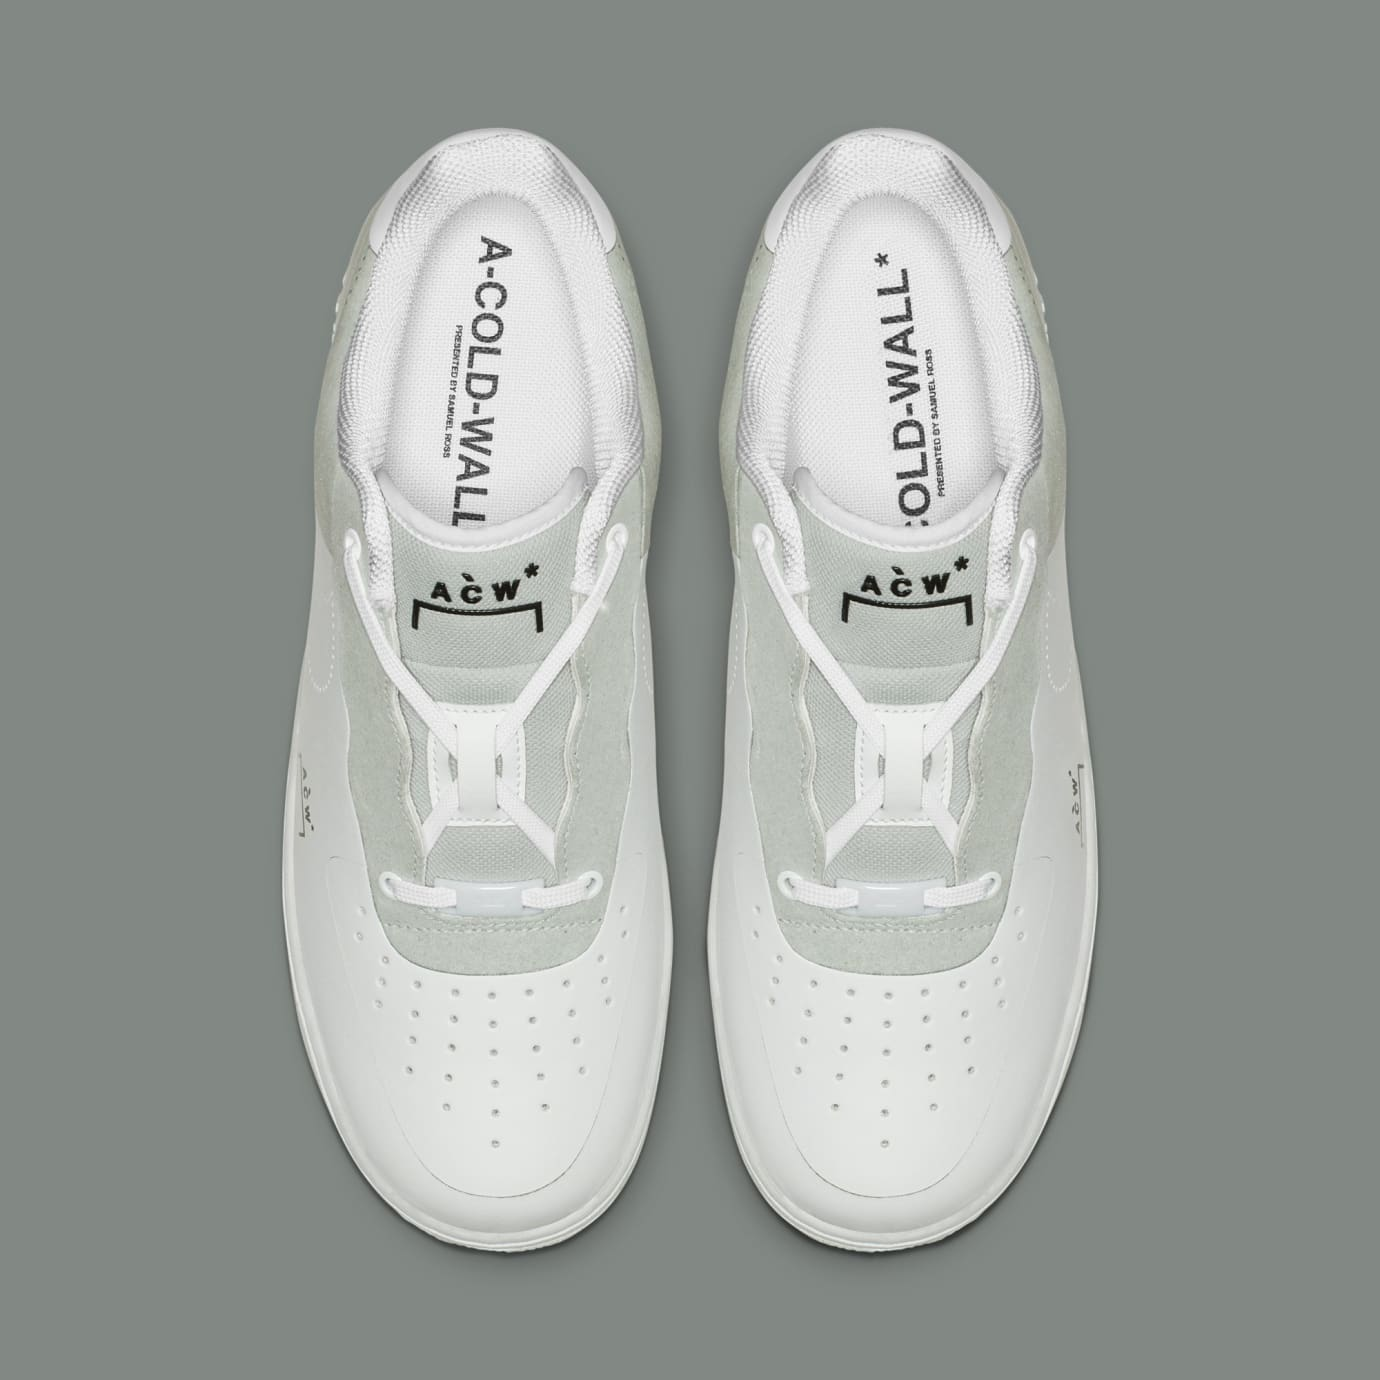 A-Cold-Wall* x Nike Air Force 1 Low 'White/Light Grey-Black' BQ6924-100 (Top)